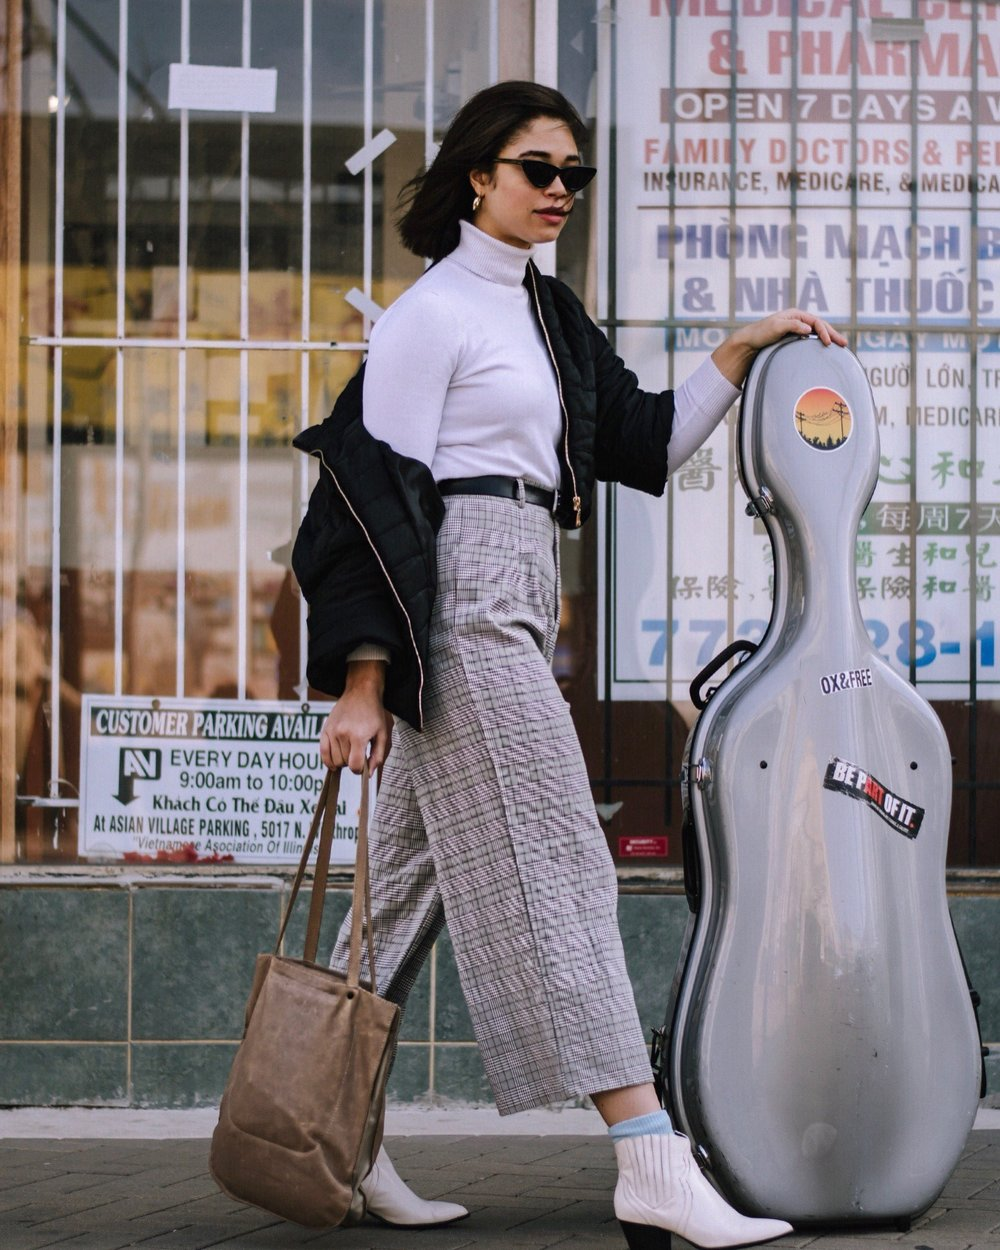 Turtleneck: Joseph A.-source: Salvation Army thrift  Wide-legged trousers: Sadie & Sage-source: Crossroads Trading  Puff Coat: Beulah-source: Crossroads Trading   Shoes: INC-source: Crossroads Trading  Bag: CHC    Sunnies: Le Specs